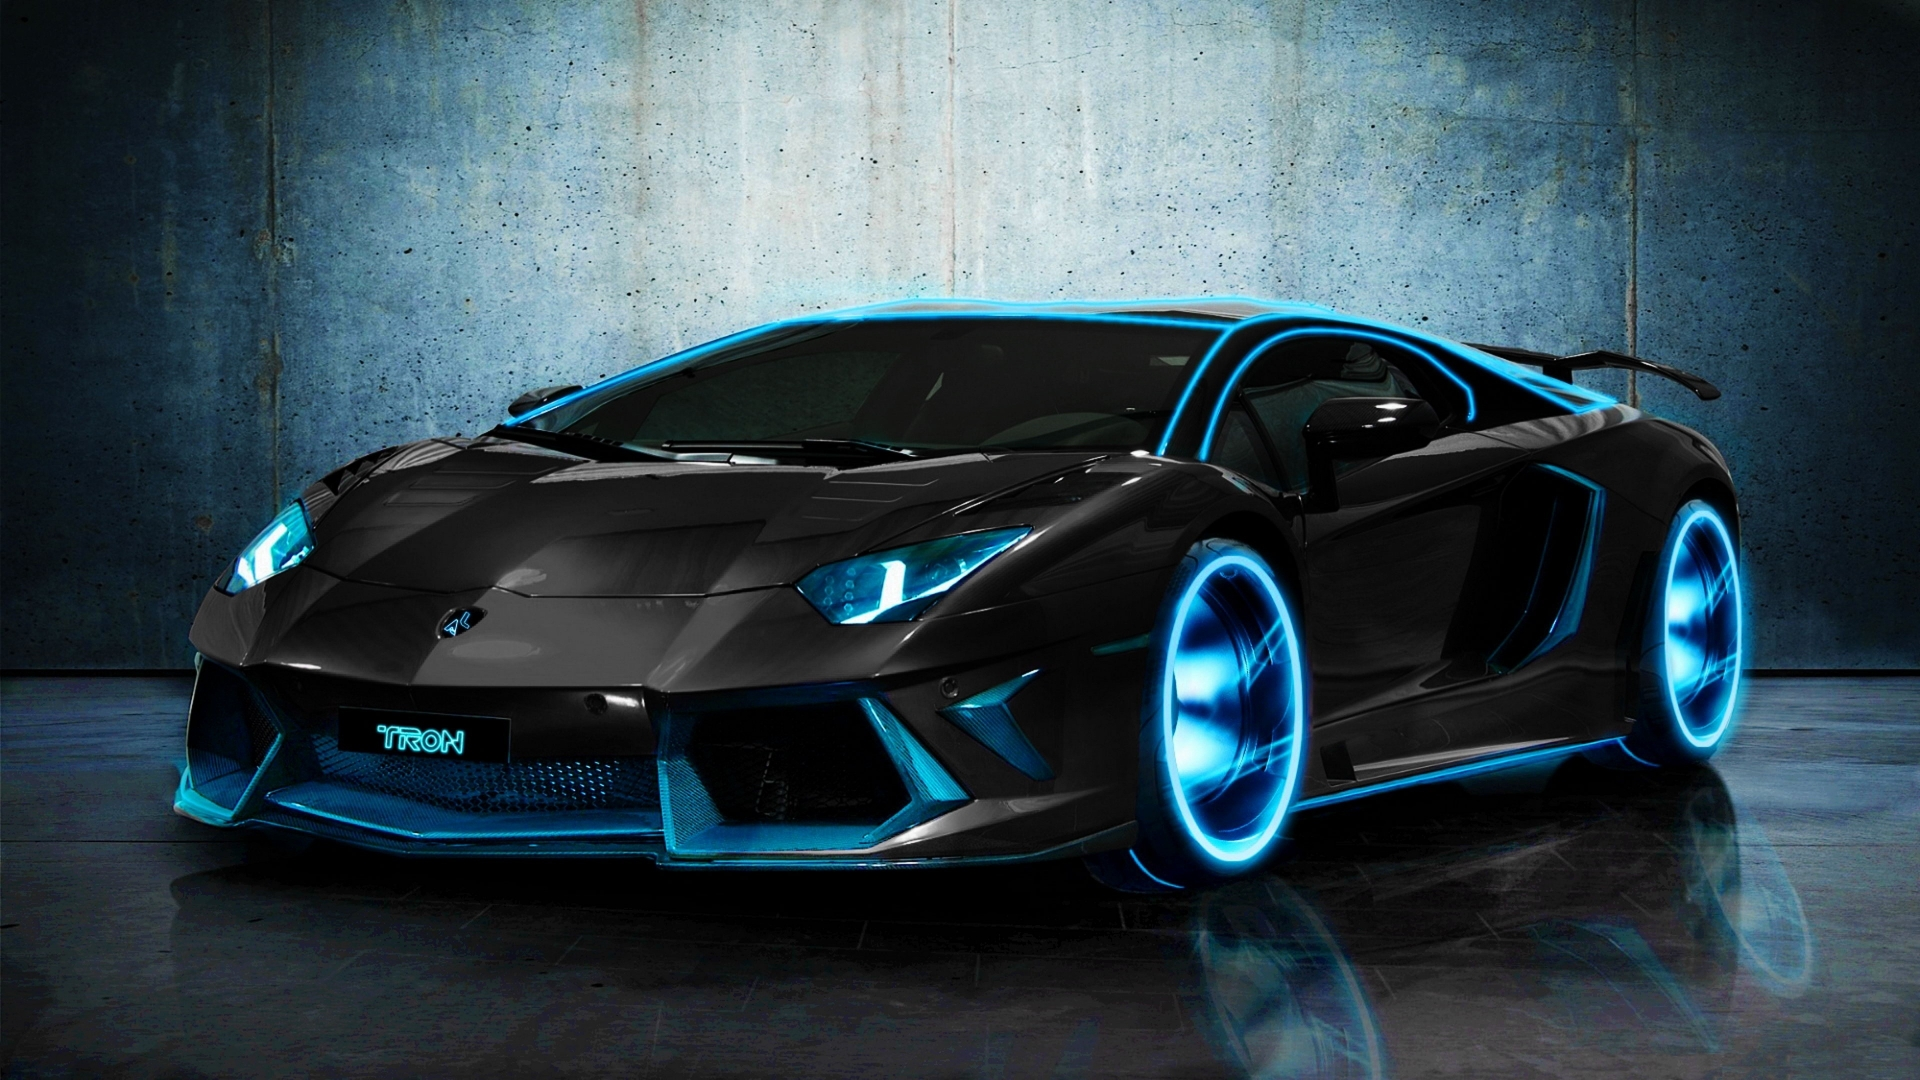 Tron Lamborghini Aventador Wallpapers HD A11 Black - lamborghini aventador desktop sports cars, race cars, luxury cars, expensive cars, wallpapers pictures images free download